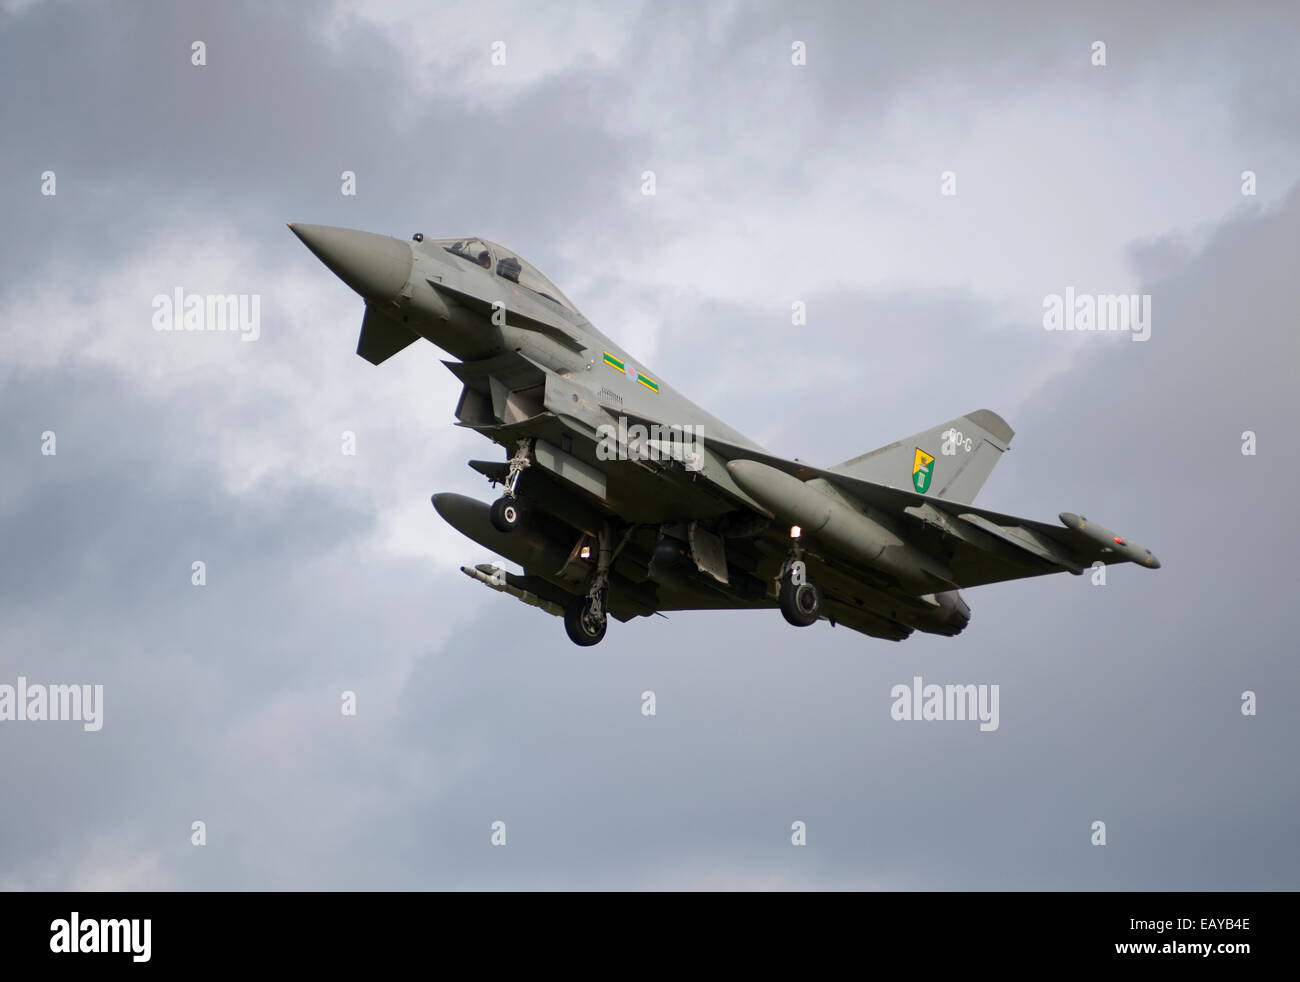 Eurofighter Typhoon FRG4 Military Fast Jet Fighter.  SCO 9168 - Stock Image